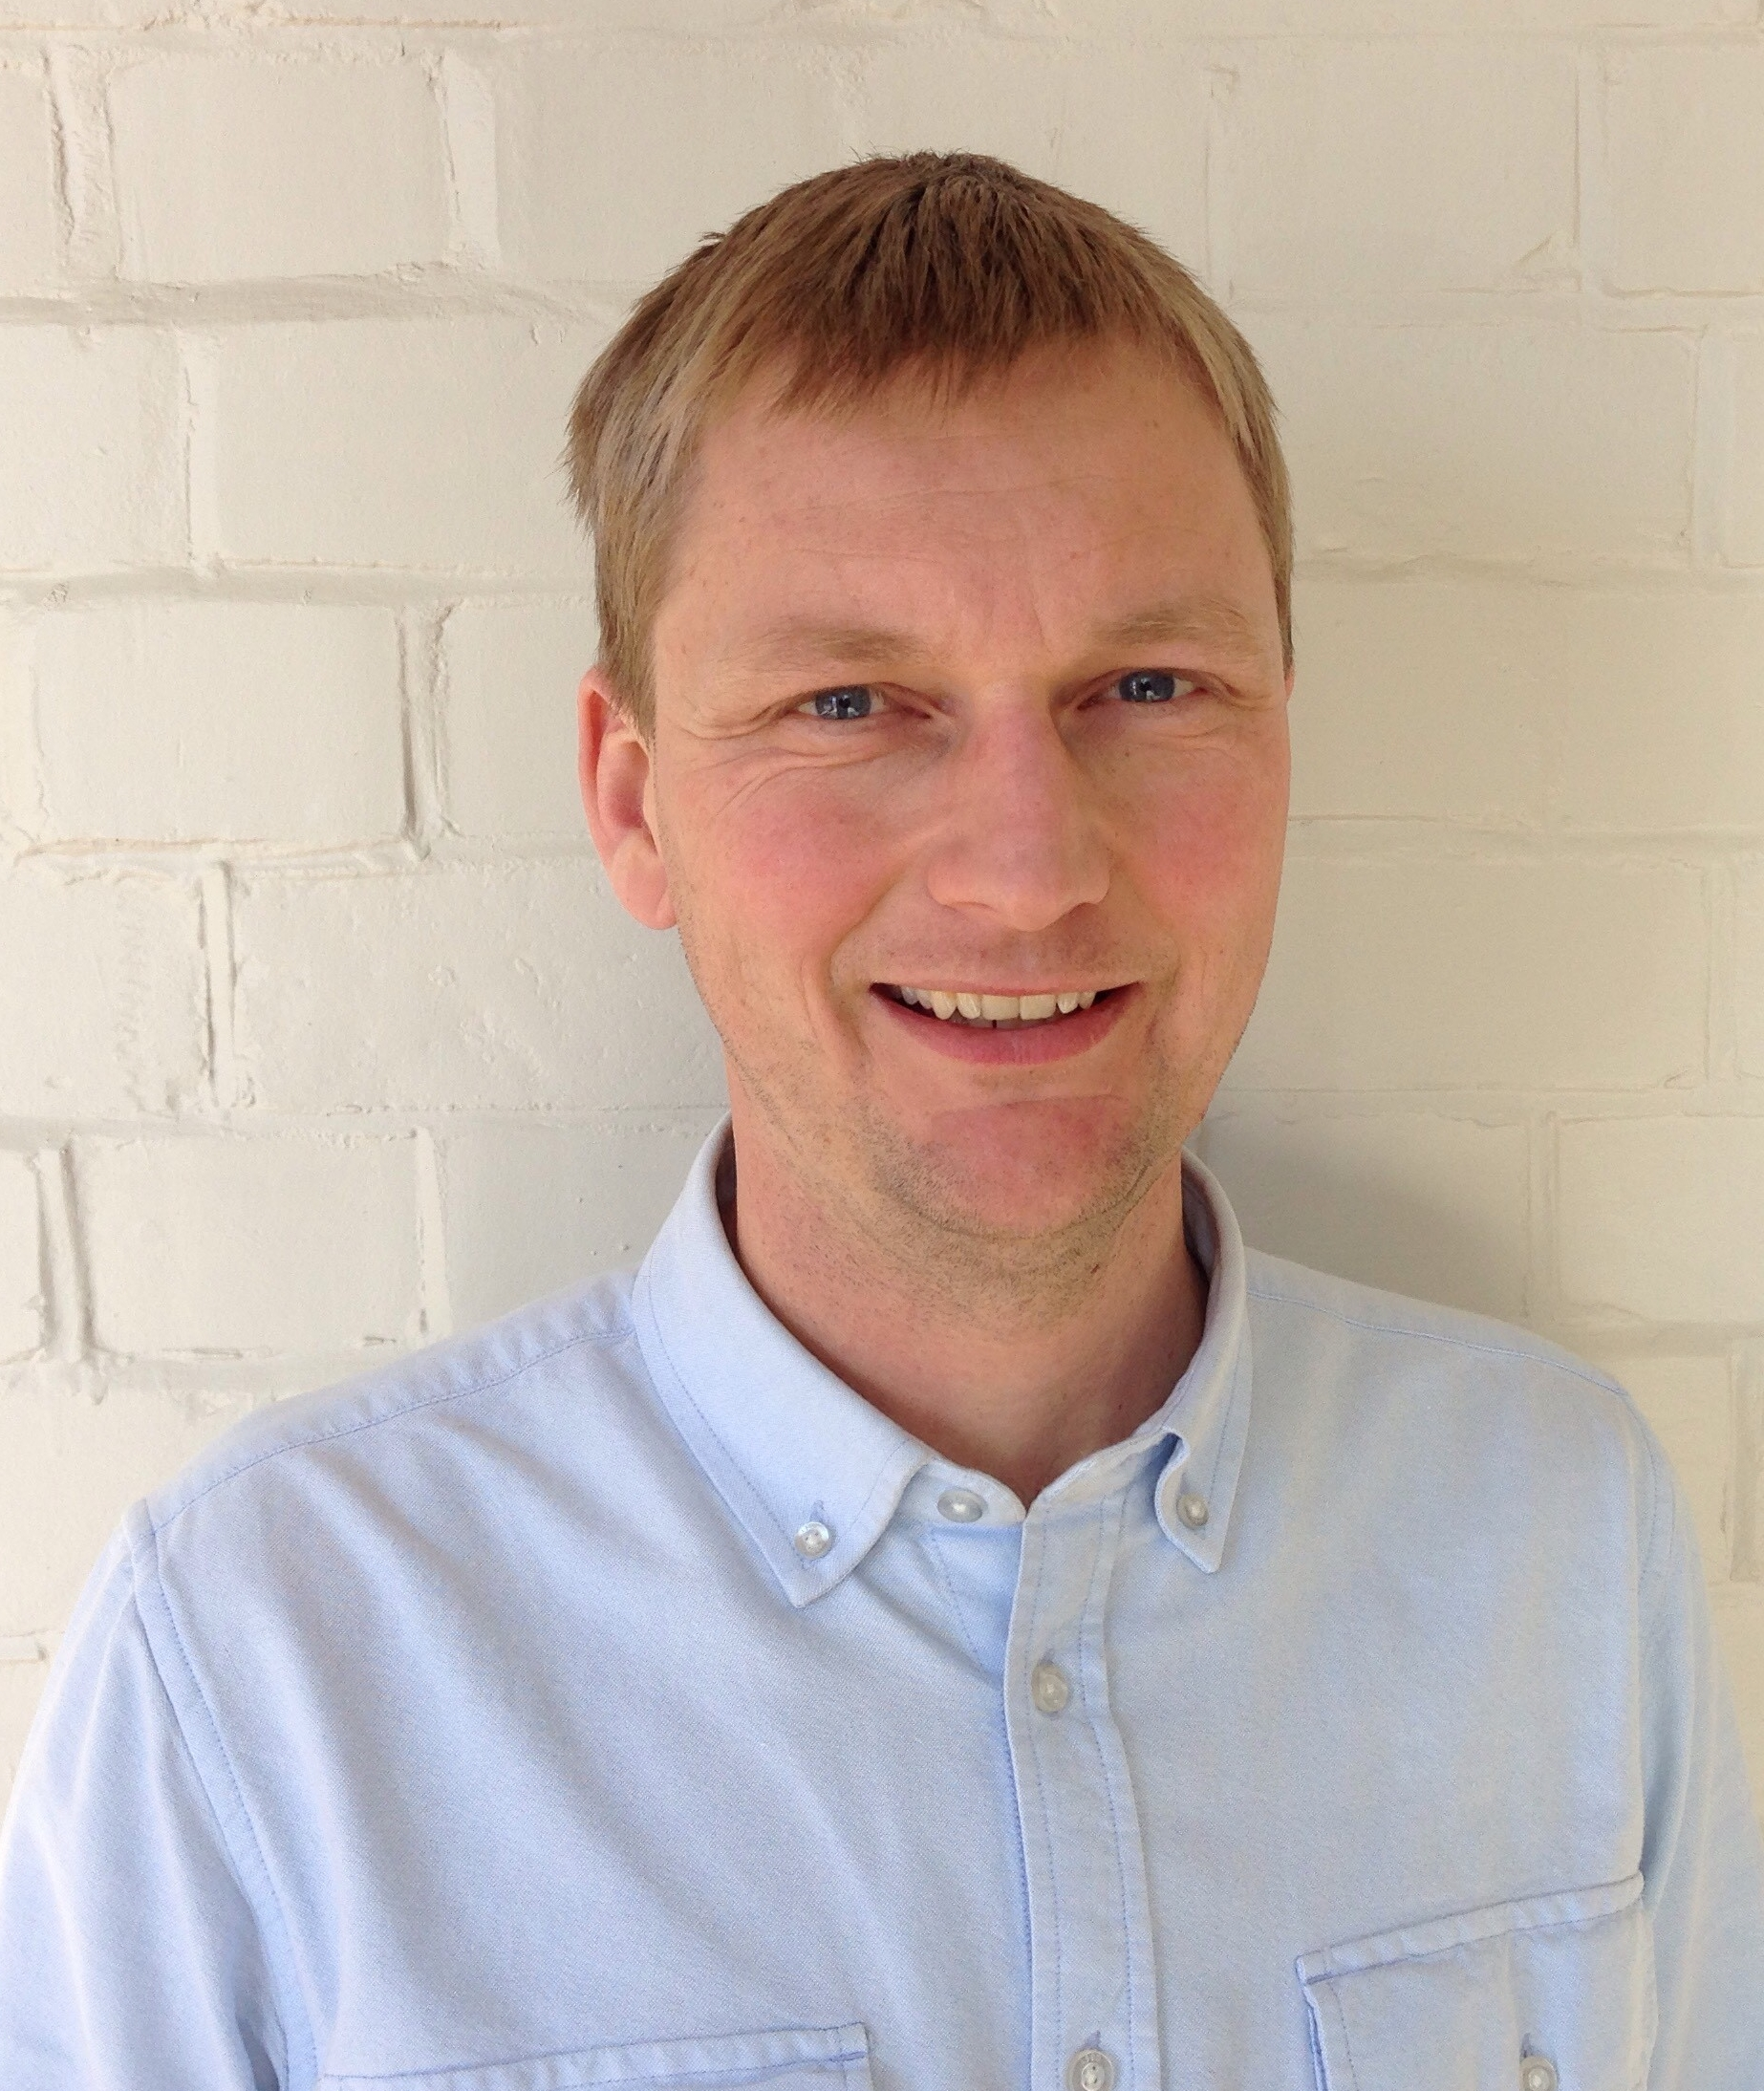 Tim Holtrop will be leading the BIM workshops.